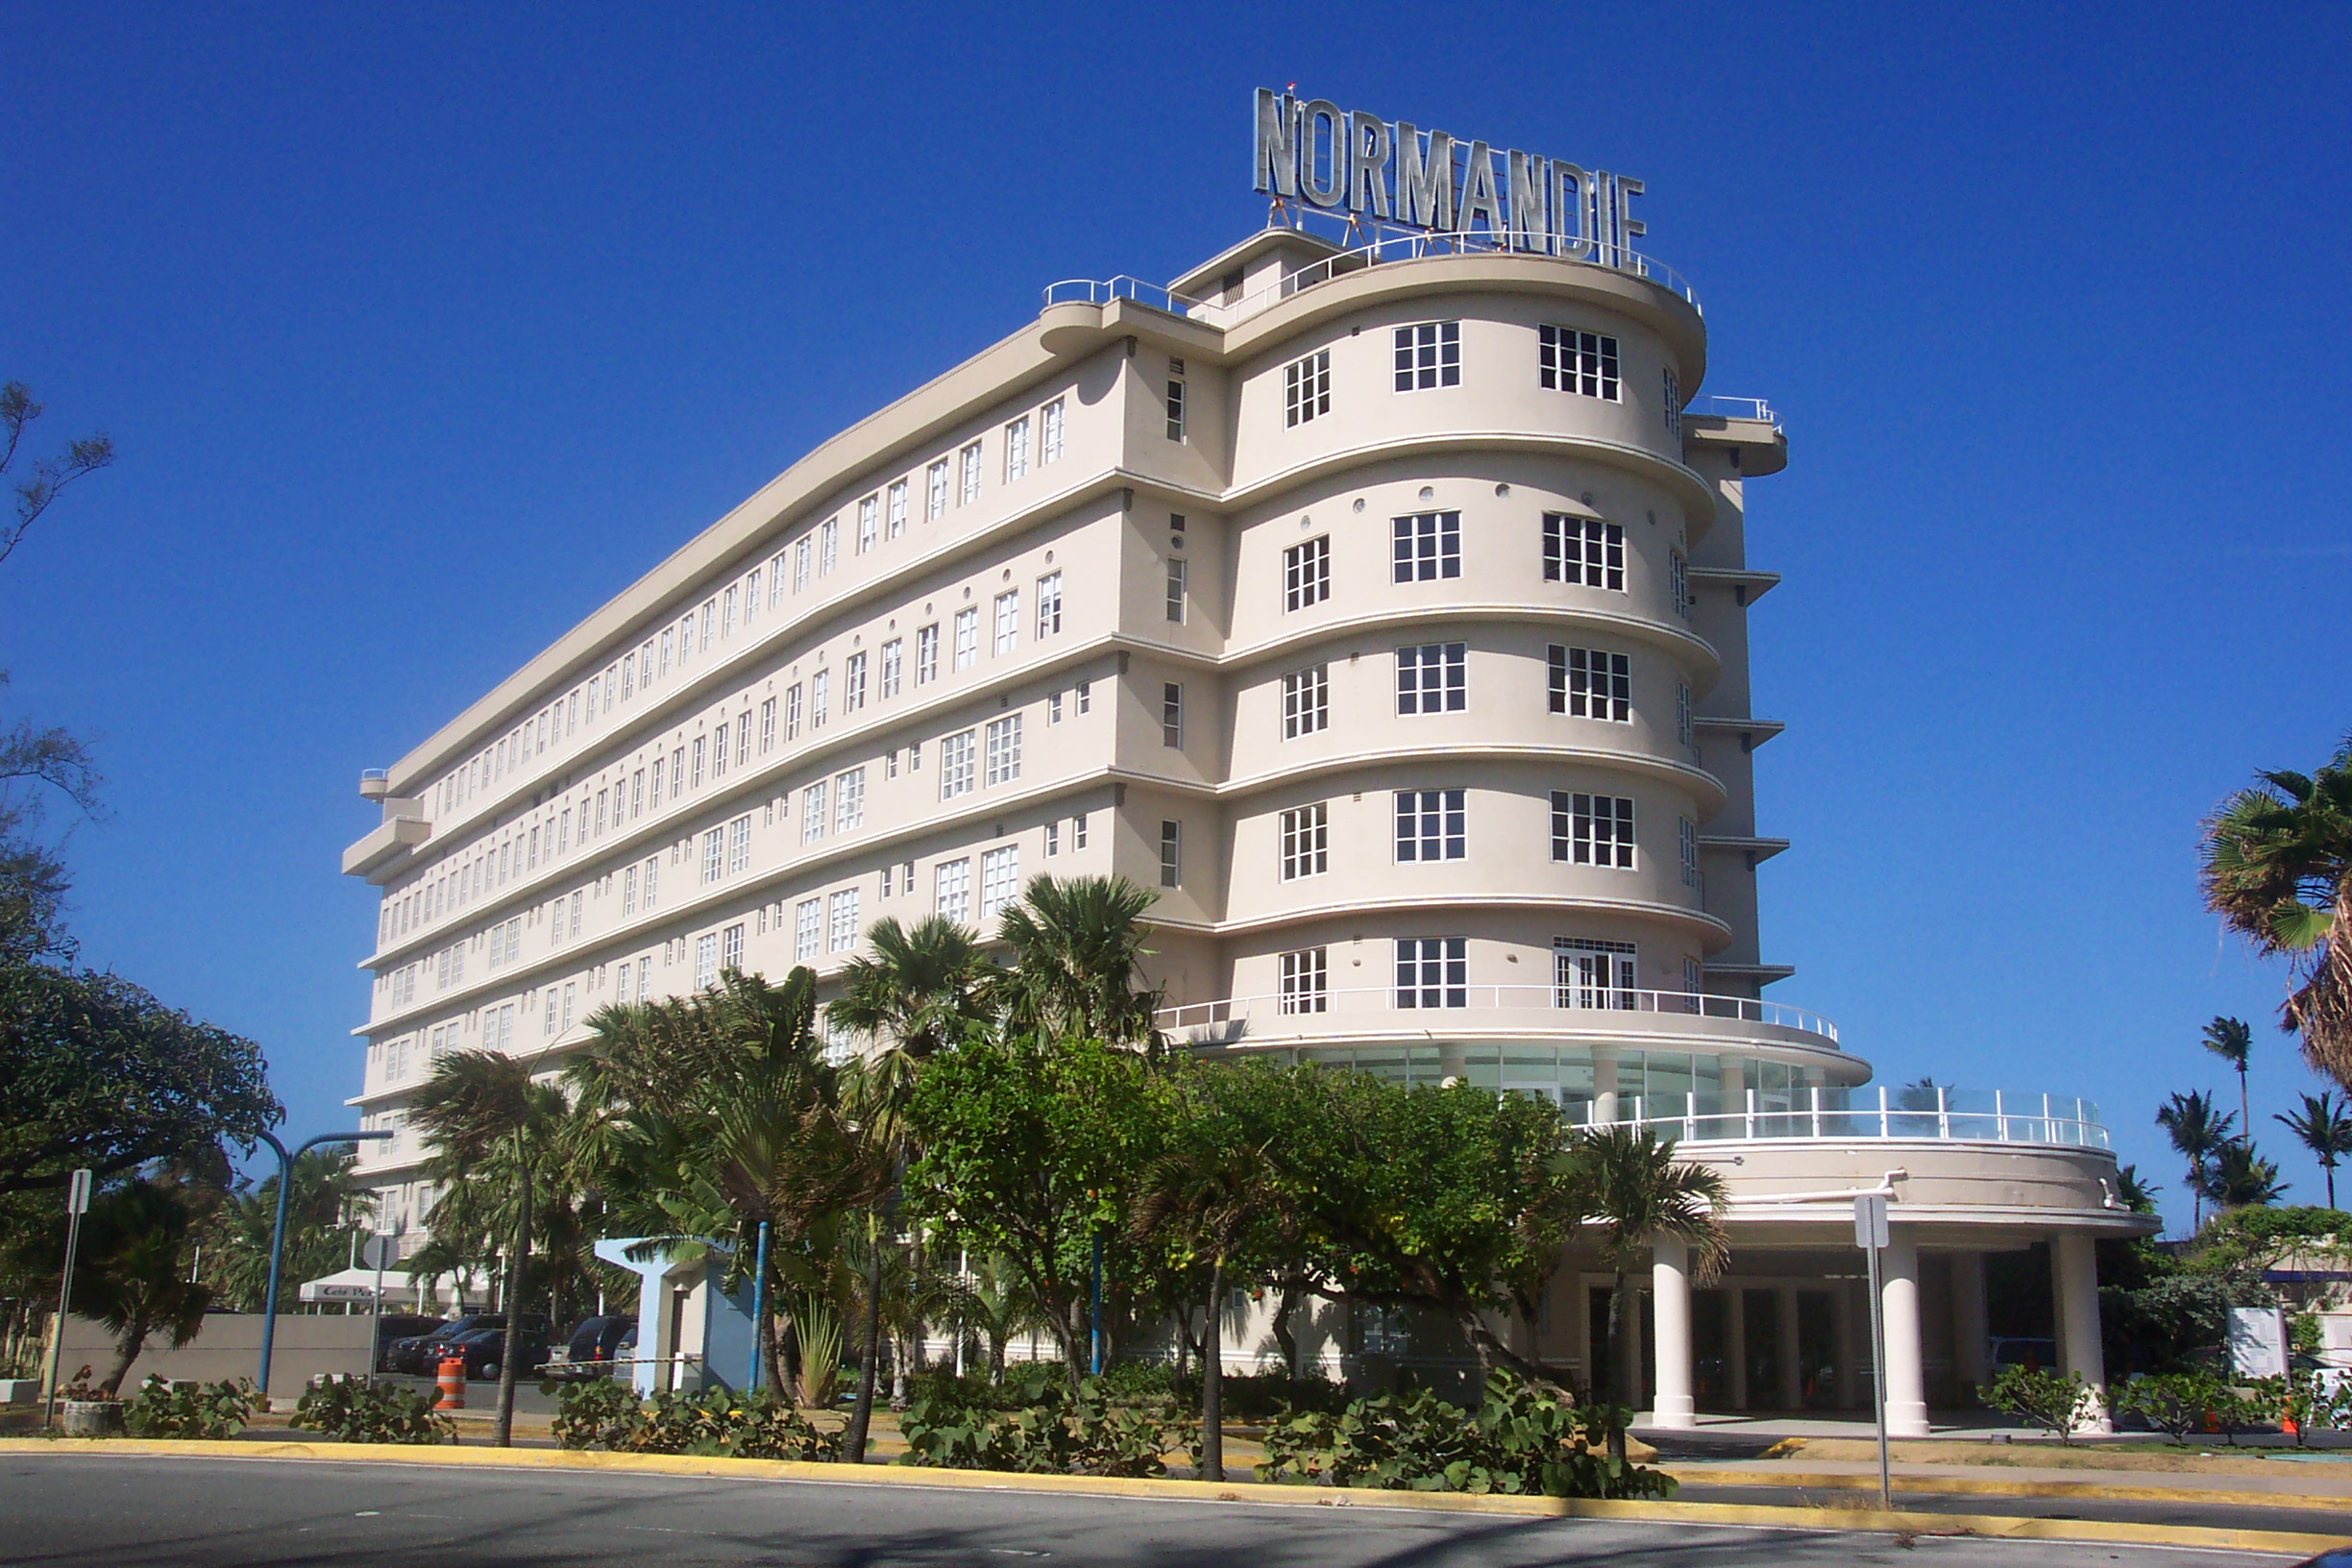 Art Moderne - Designing Buildings Wiki